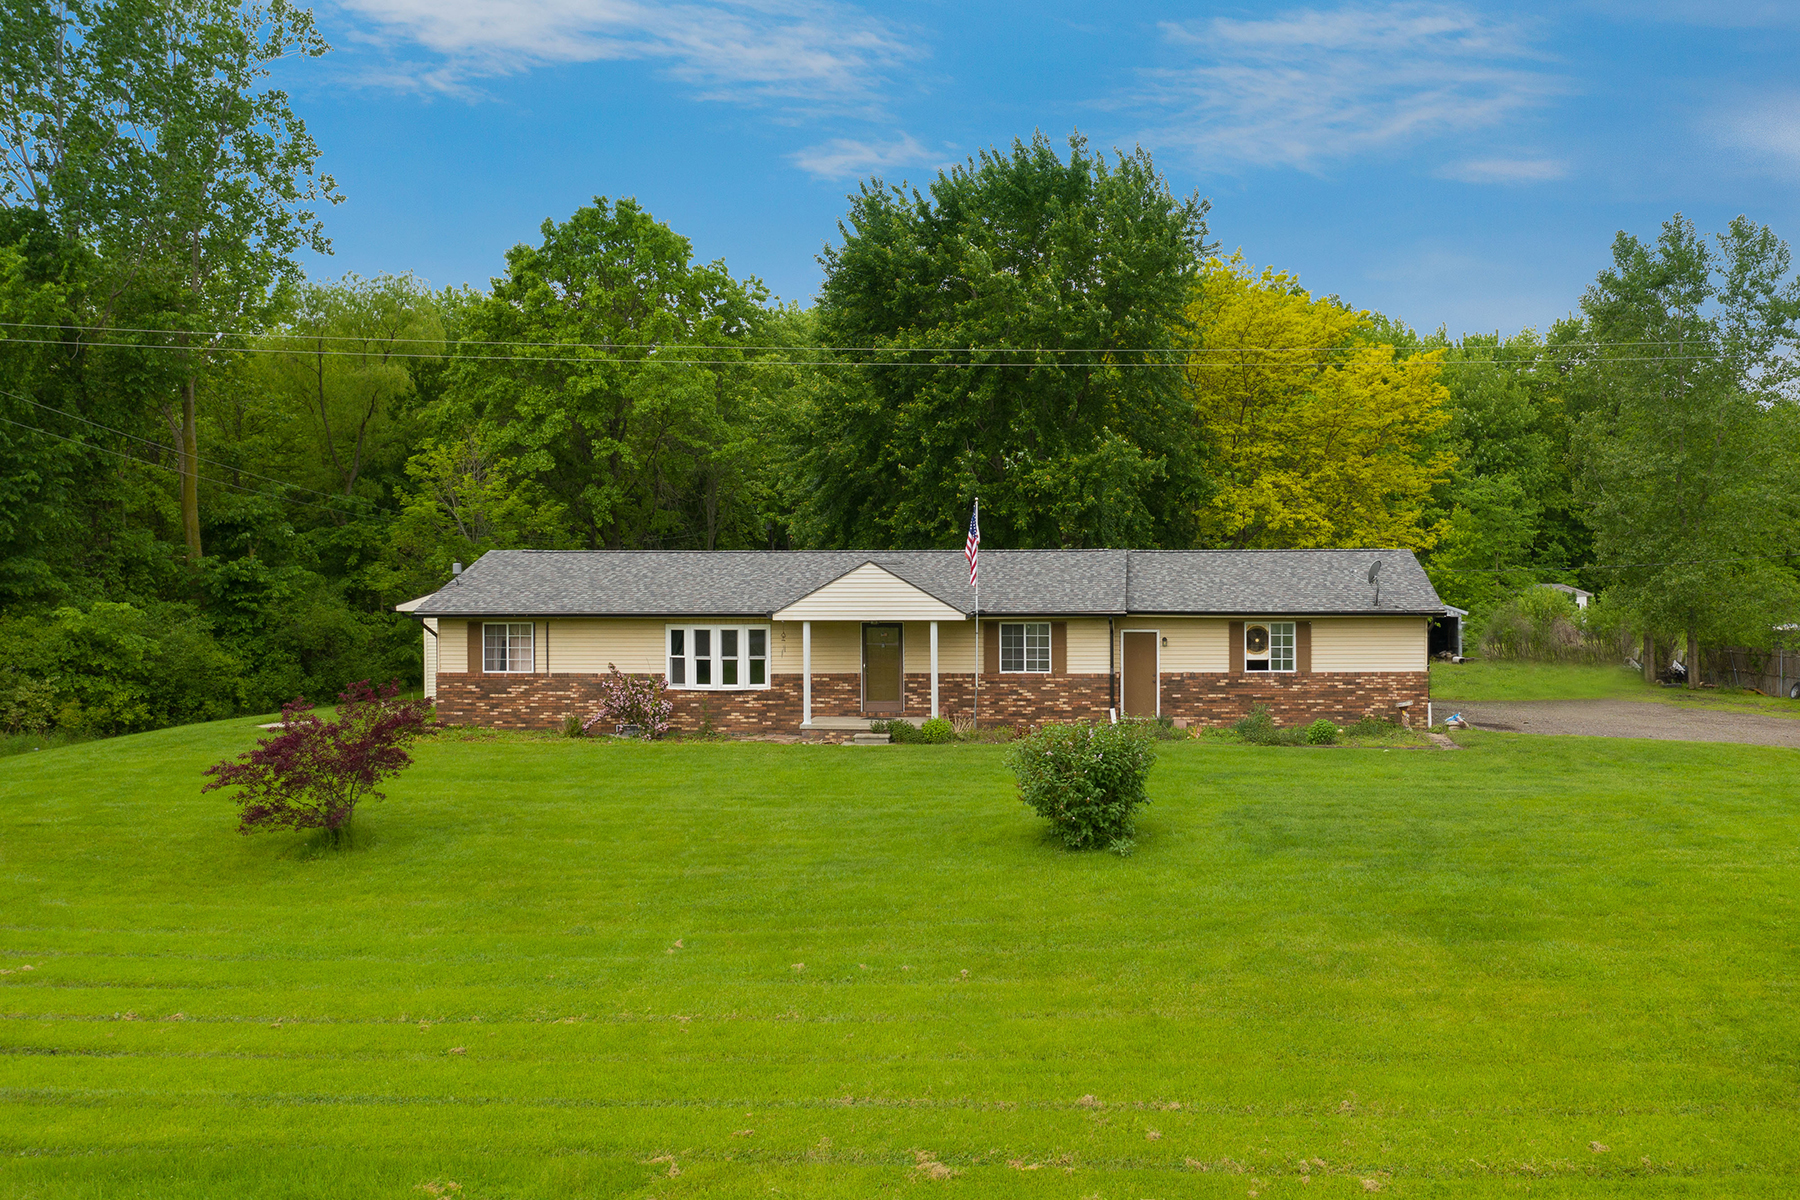 Single Family Homes for Sale at Cottrellville Township 6630 Starville Road Cottrellville Township, Michigan 48039 United States